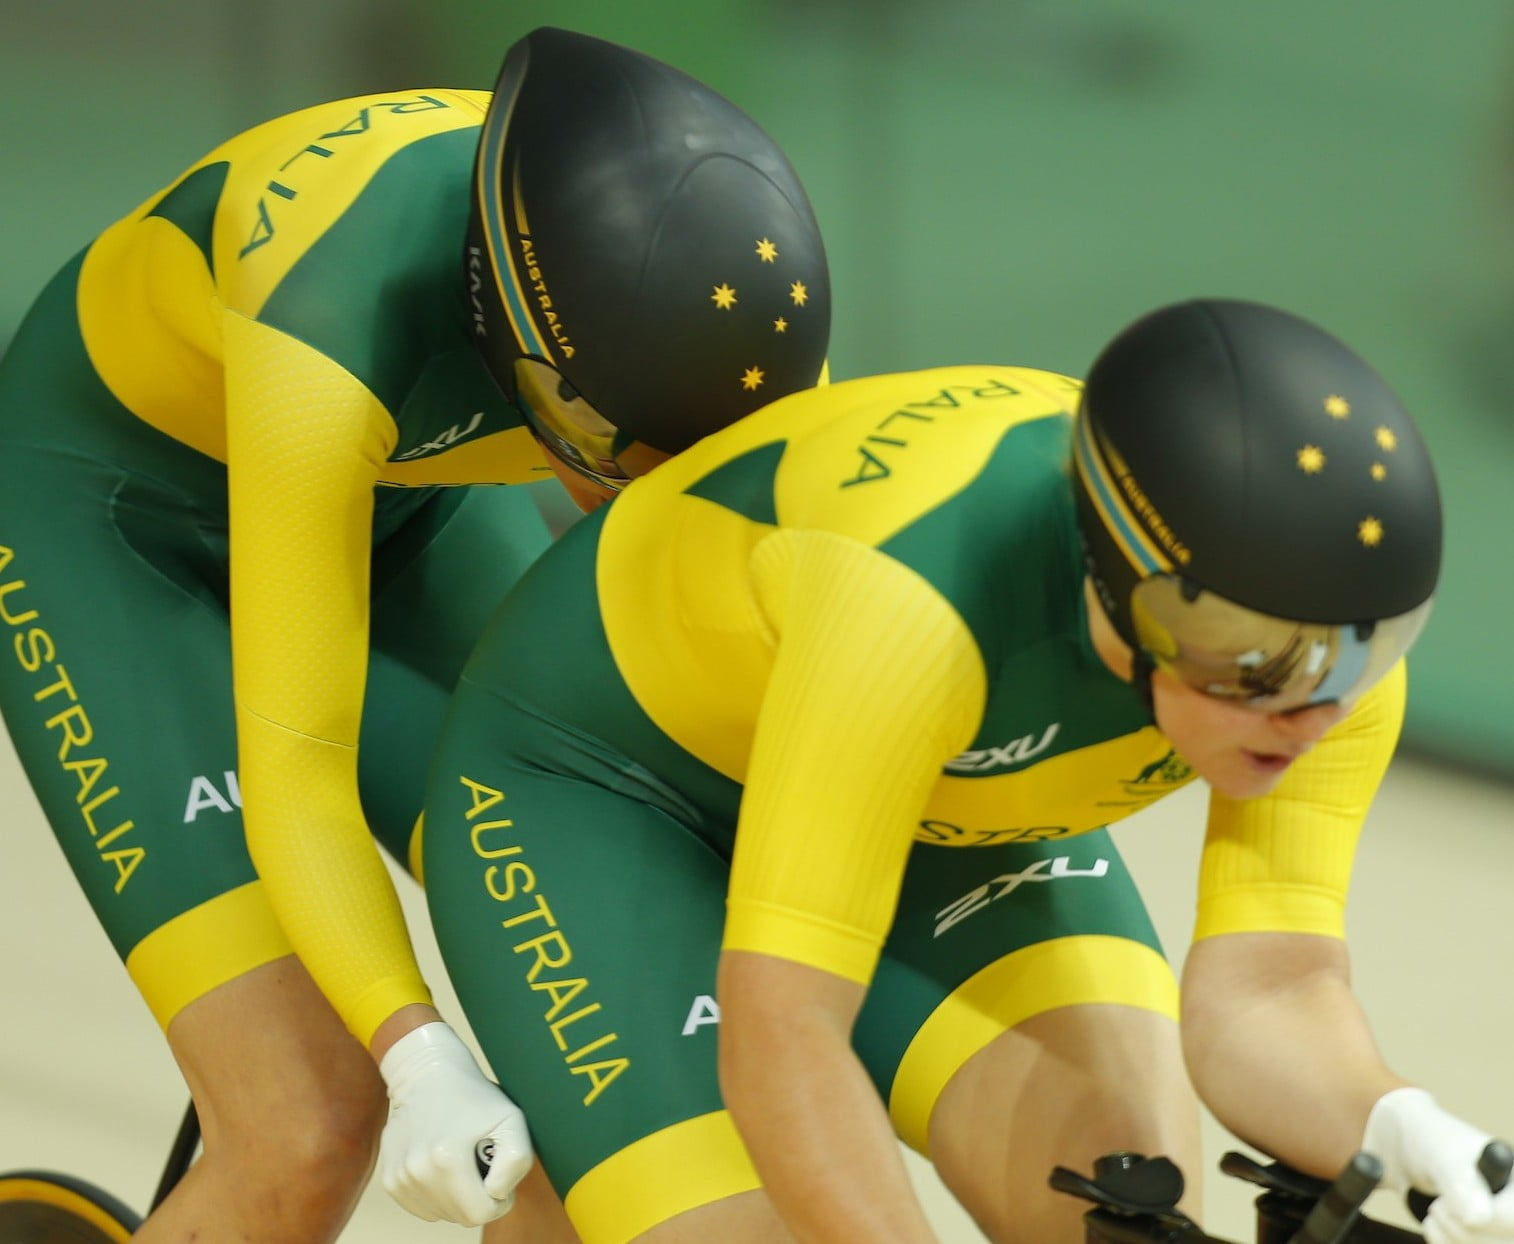 Paralympic cyclists end their track campaign